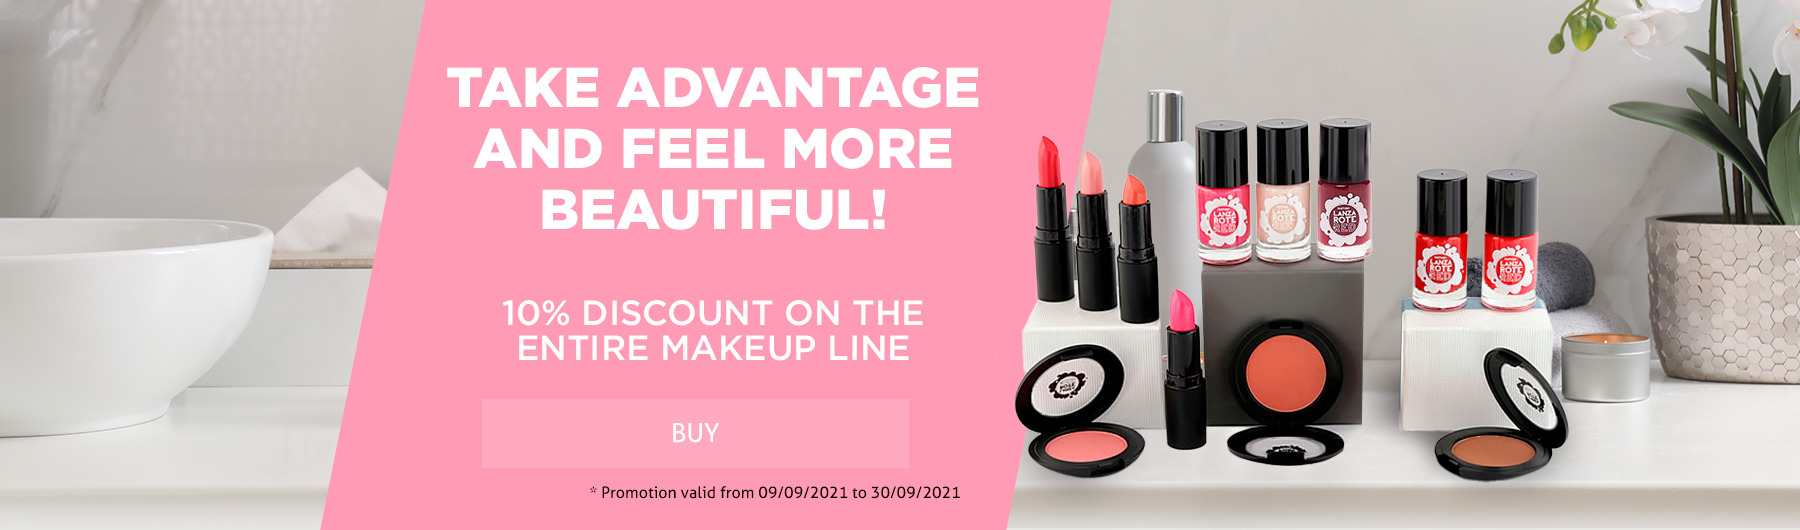 10% DISCOUNT in our Makeup Line!